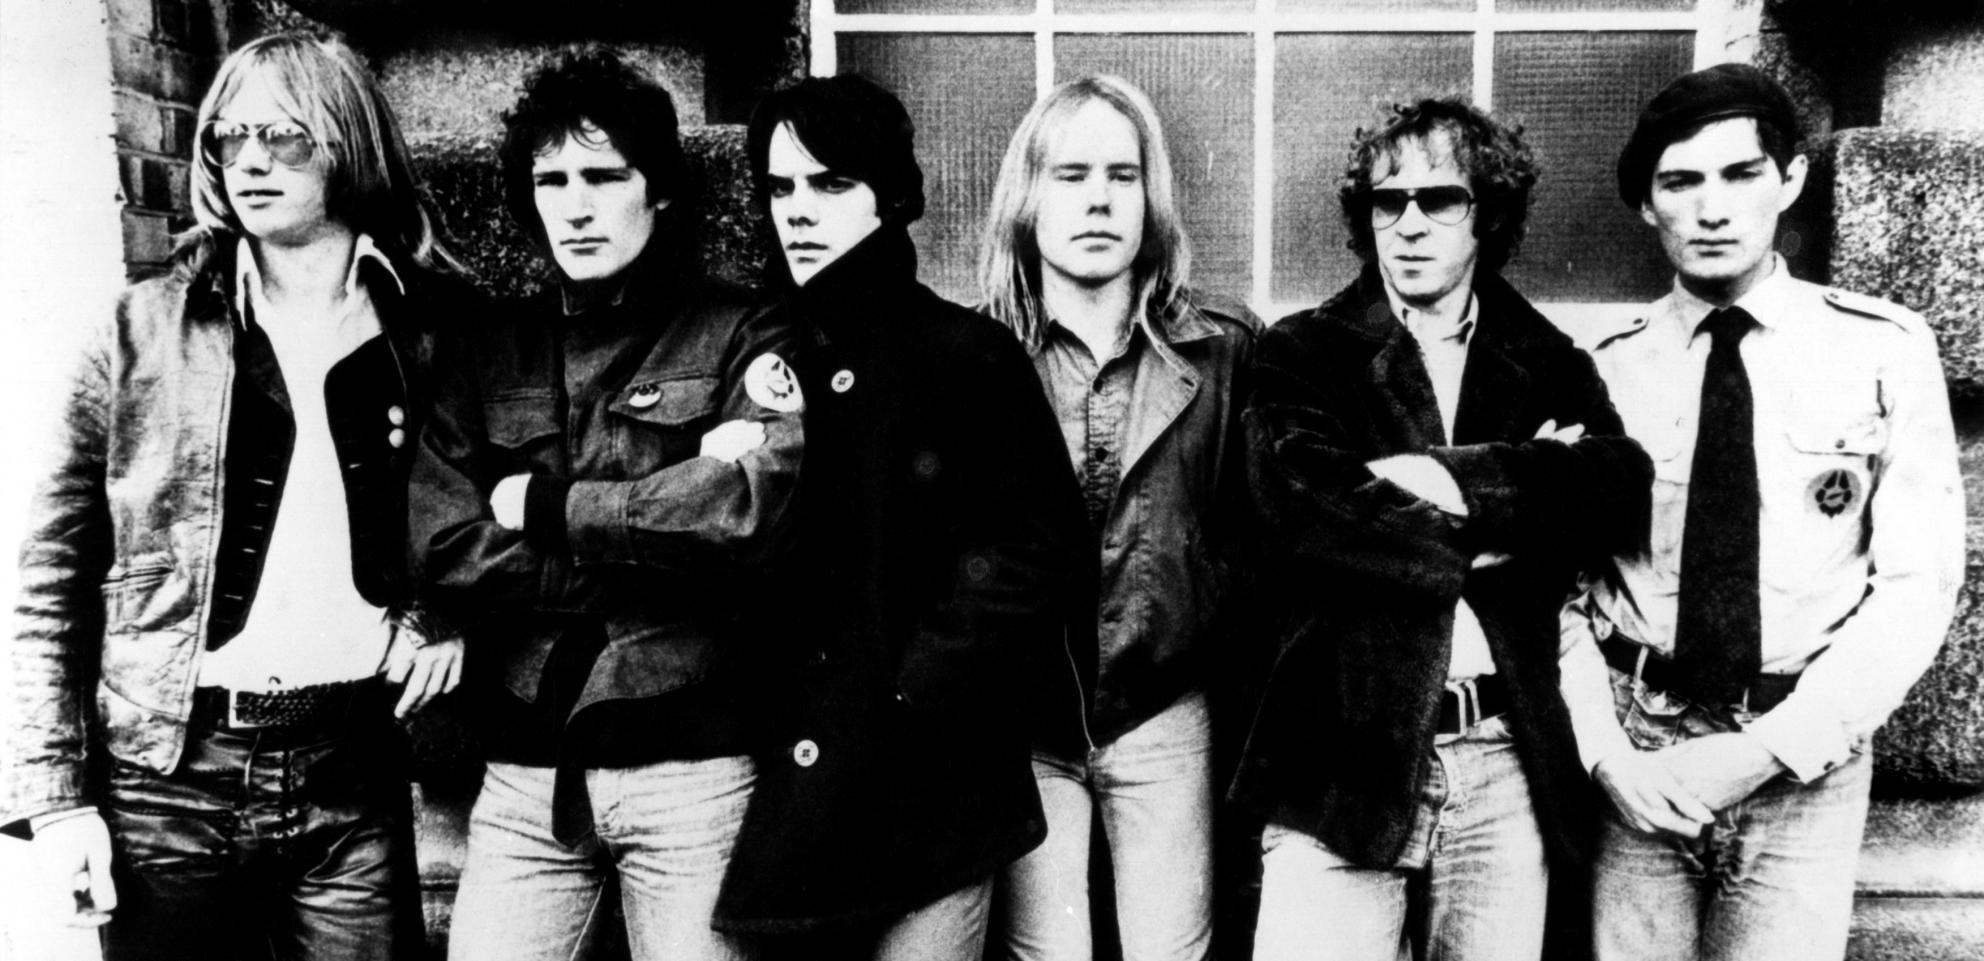 [Win!] One of FIVE double passes to Radio Birdman doco 'Descent Into the Maelstrom' + Q&A with Director Jonathan Sequeira